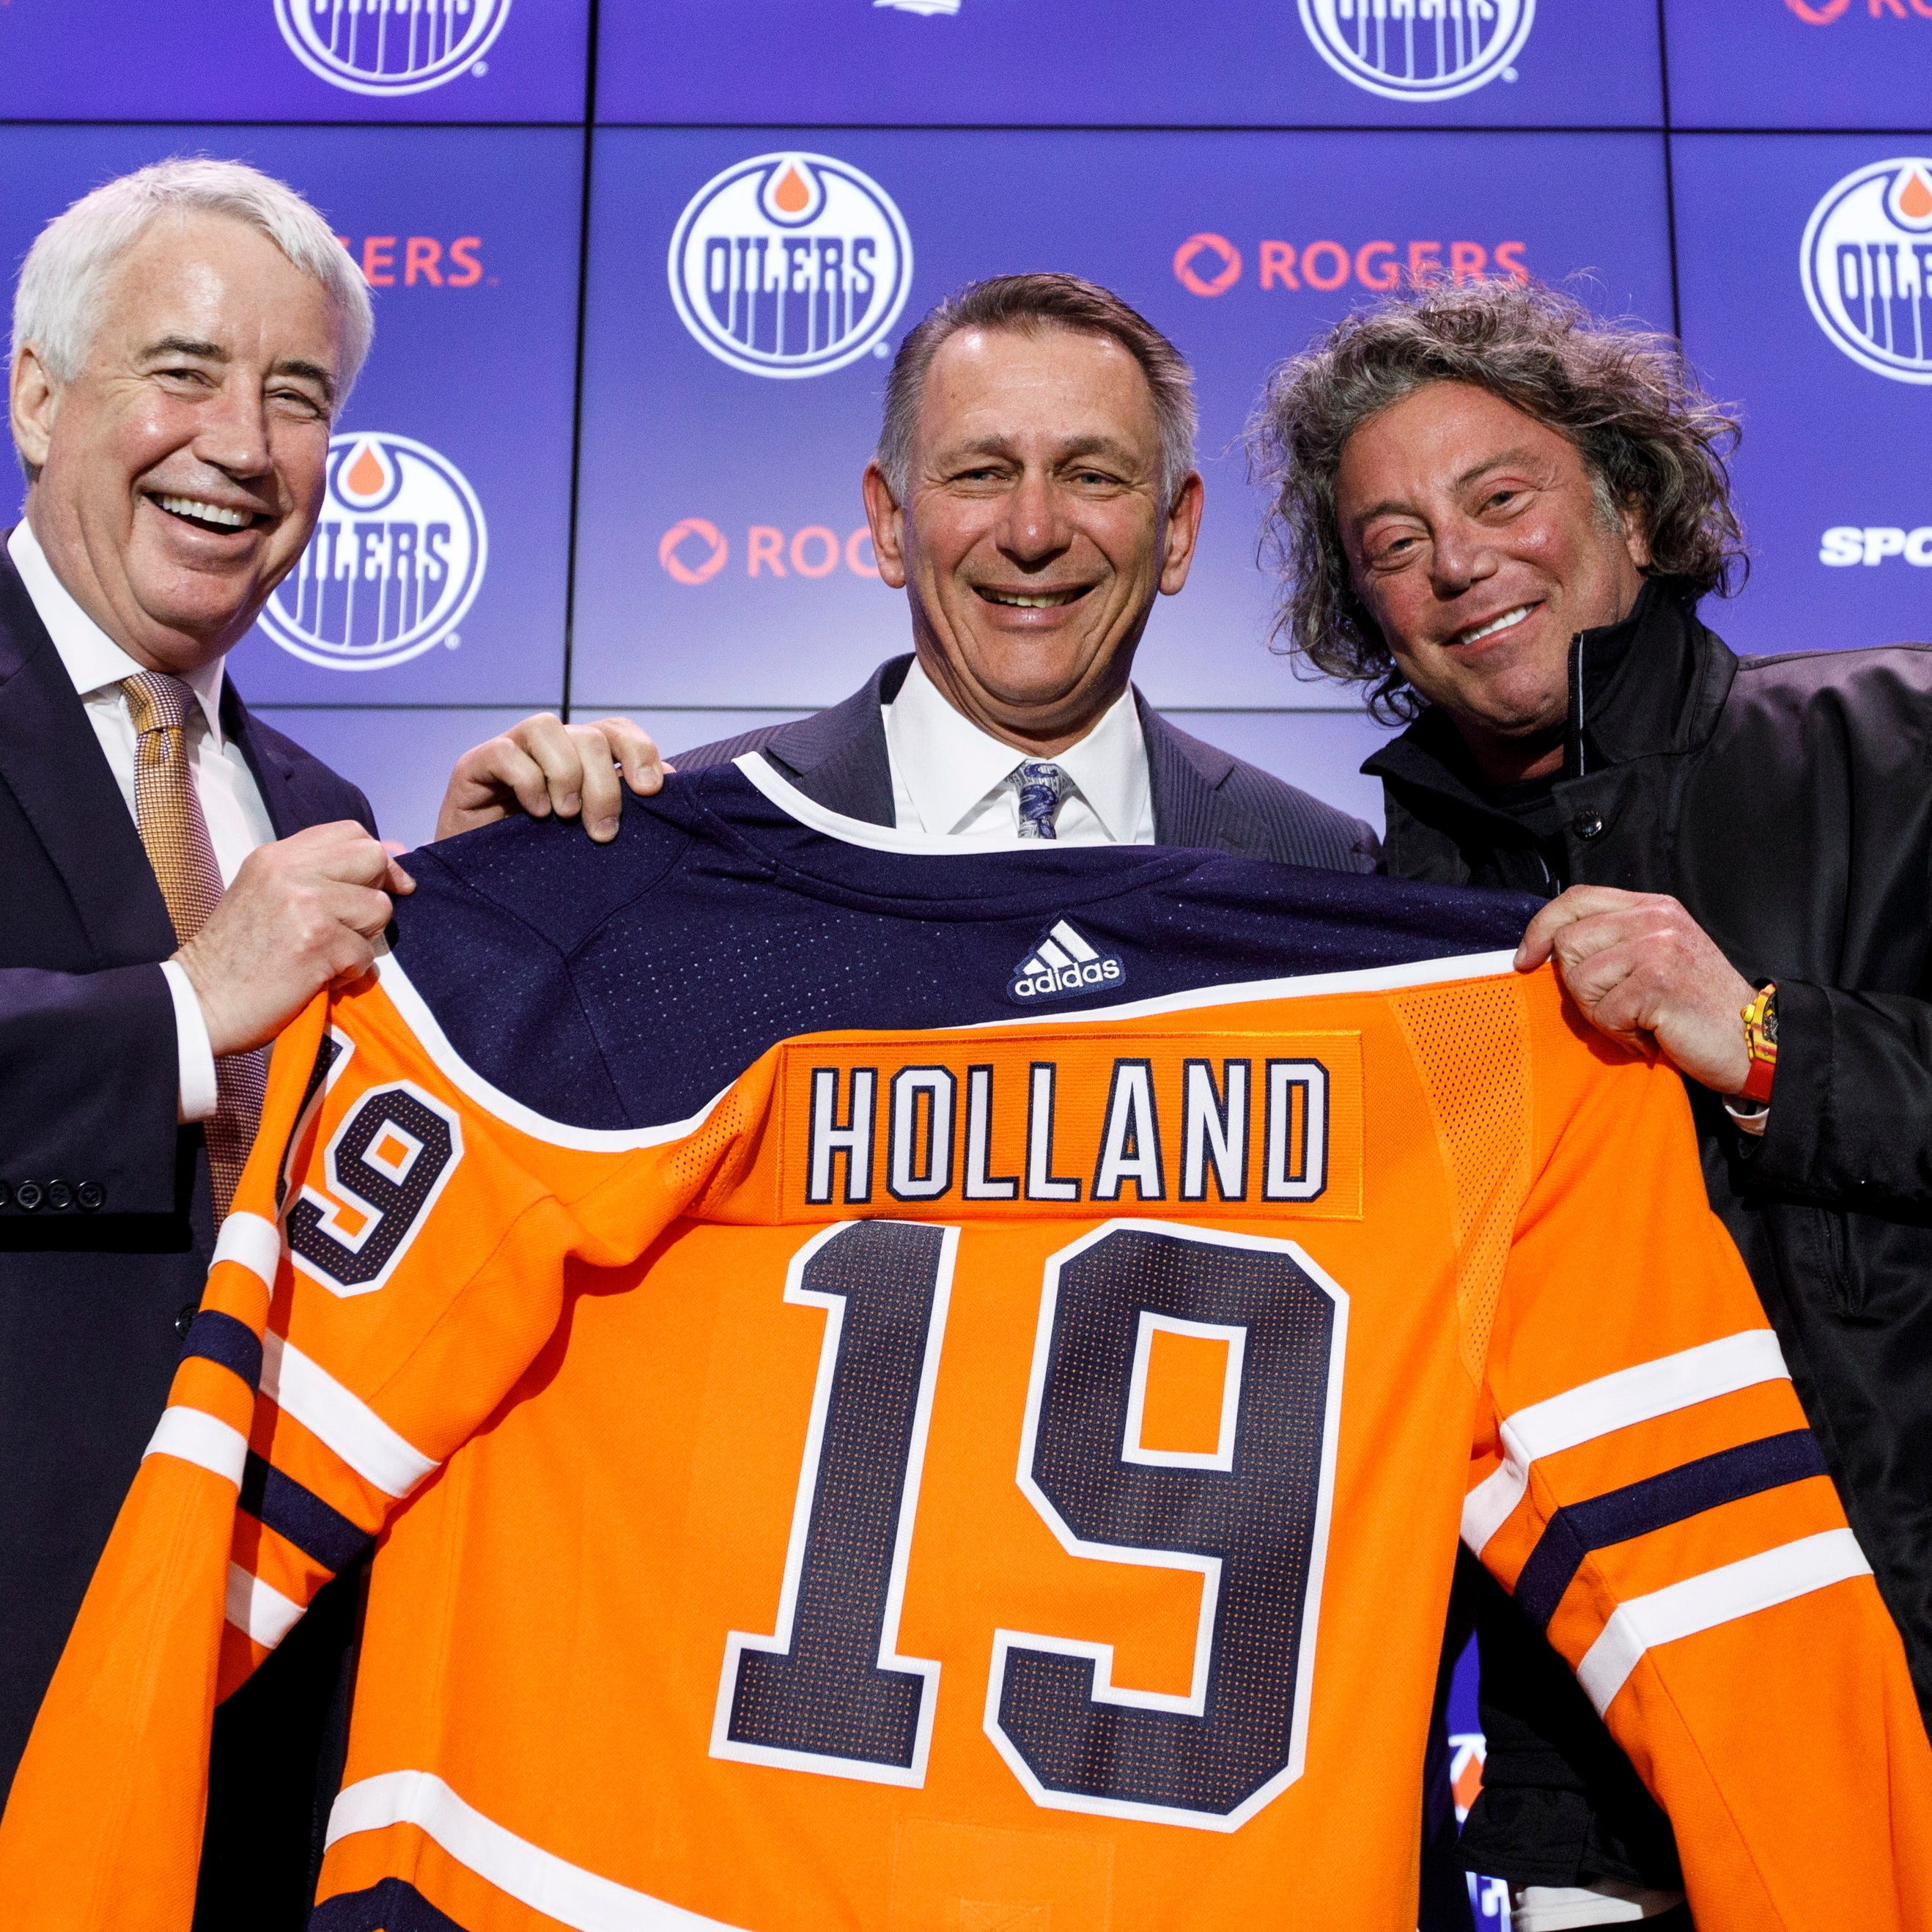 New Oilers GM Ken Holland says recent scouting trip with Wings convinced him to move on